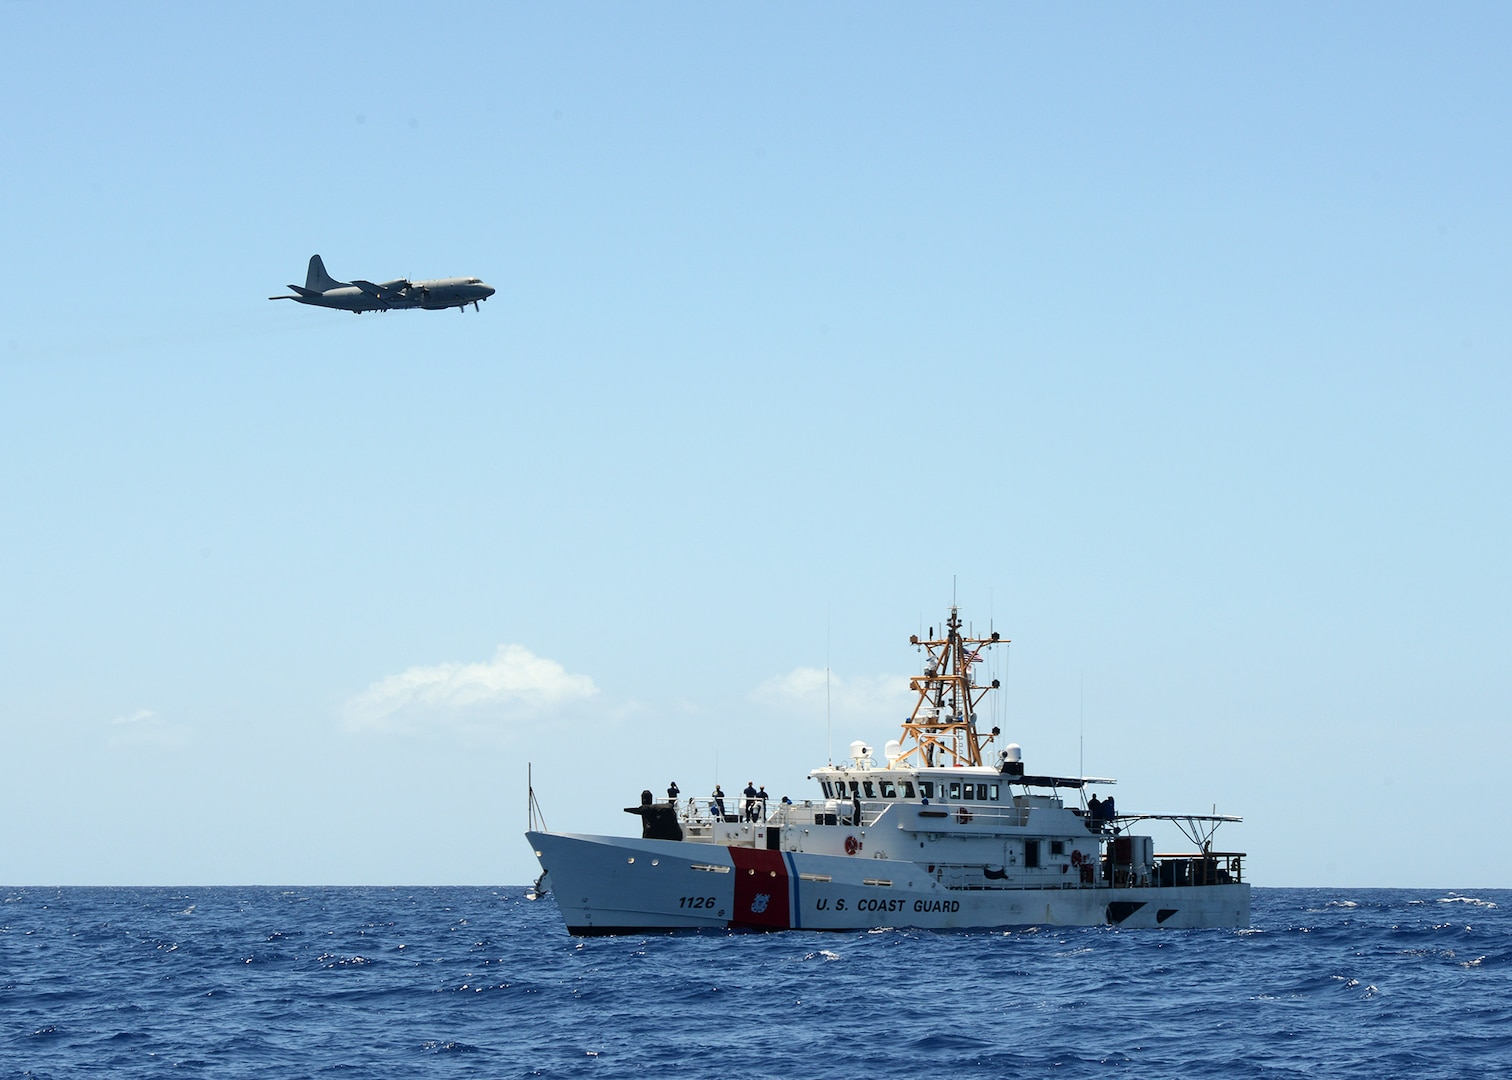 U.S. Coast Guard, Partners from New Zealand, Australia, France Conduct International Mass Rescue Exercise off Oahu